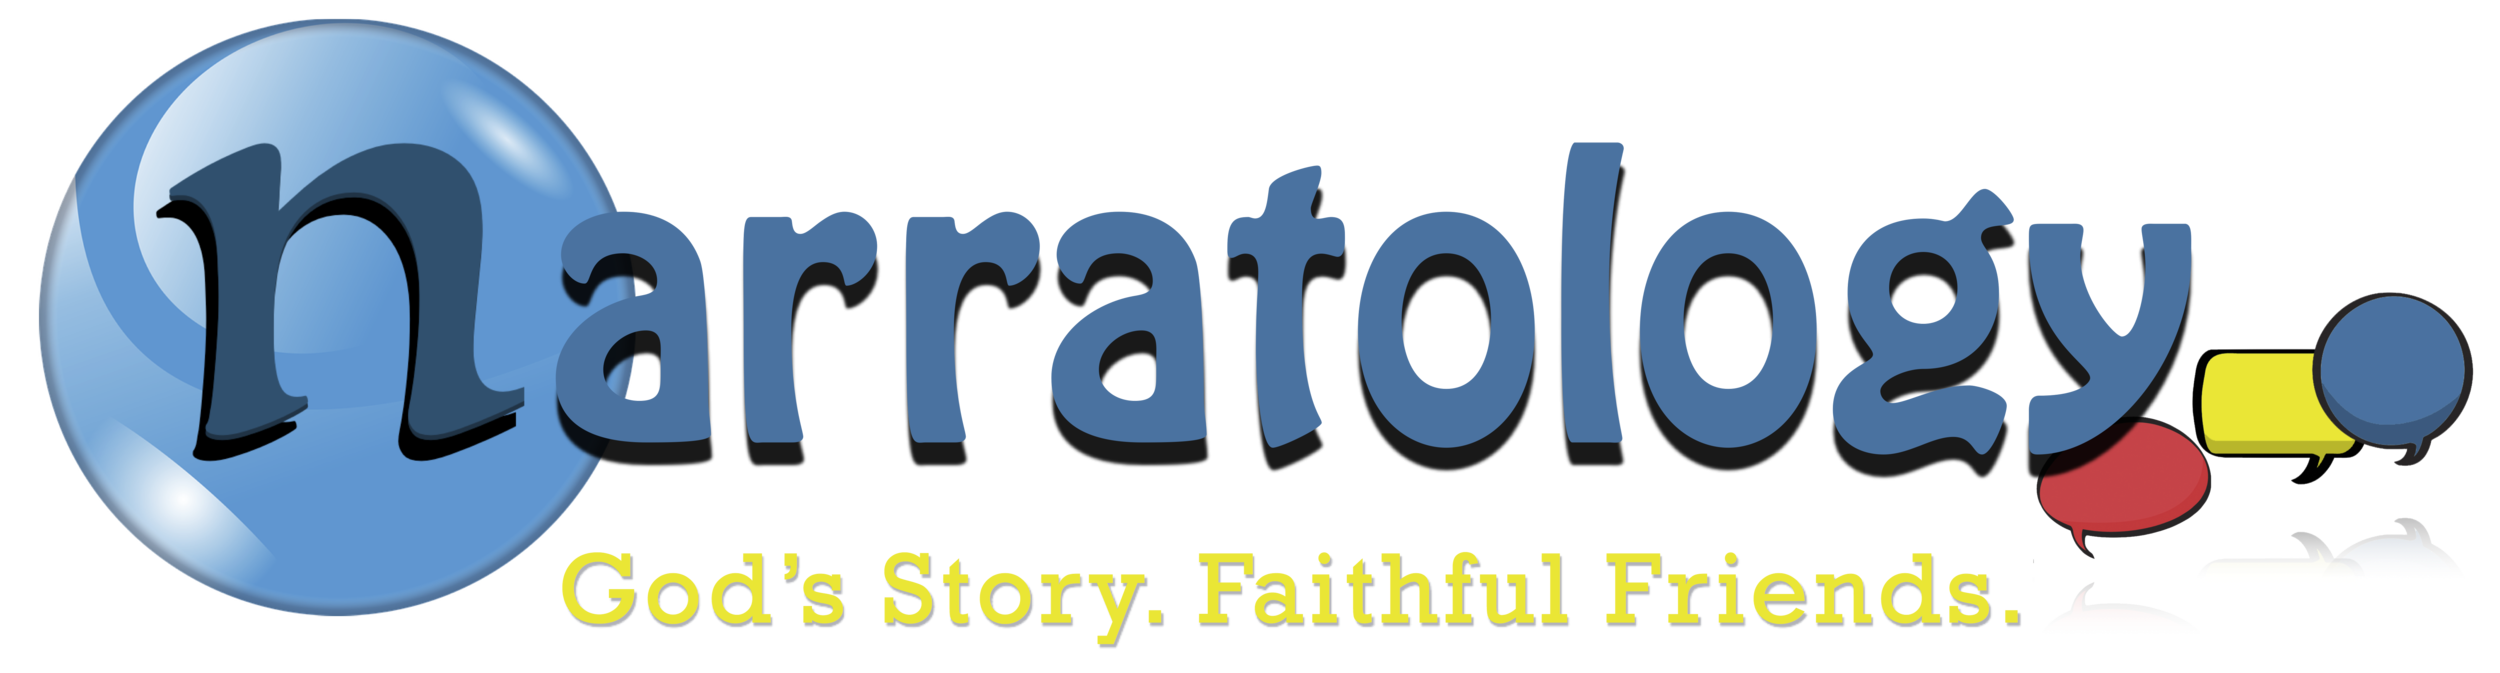 Narratology™ Branding Image - Narrative Lectionary & Church Resource Provider Clergy Stuff™